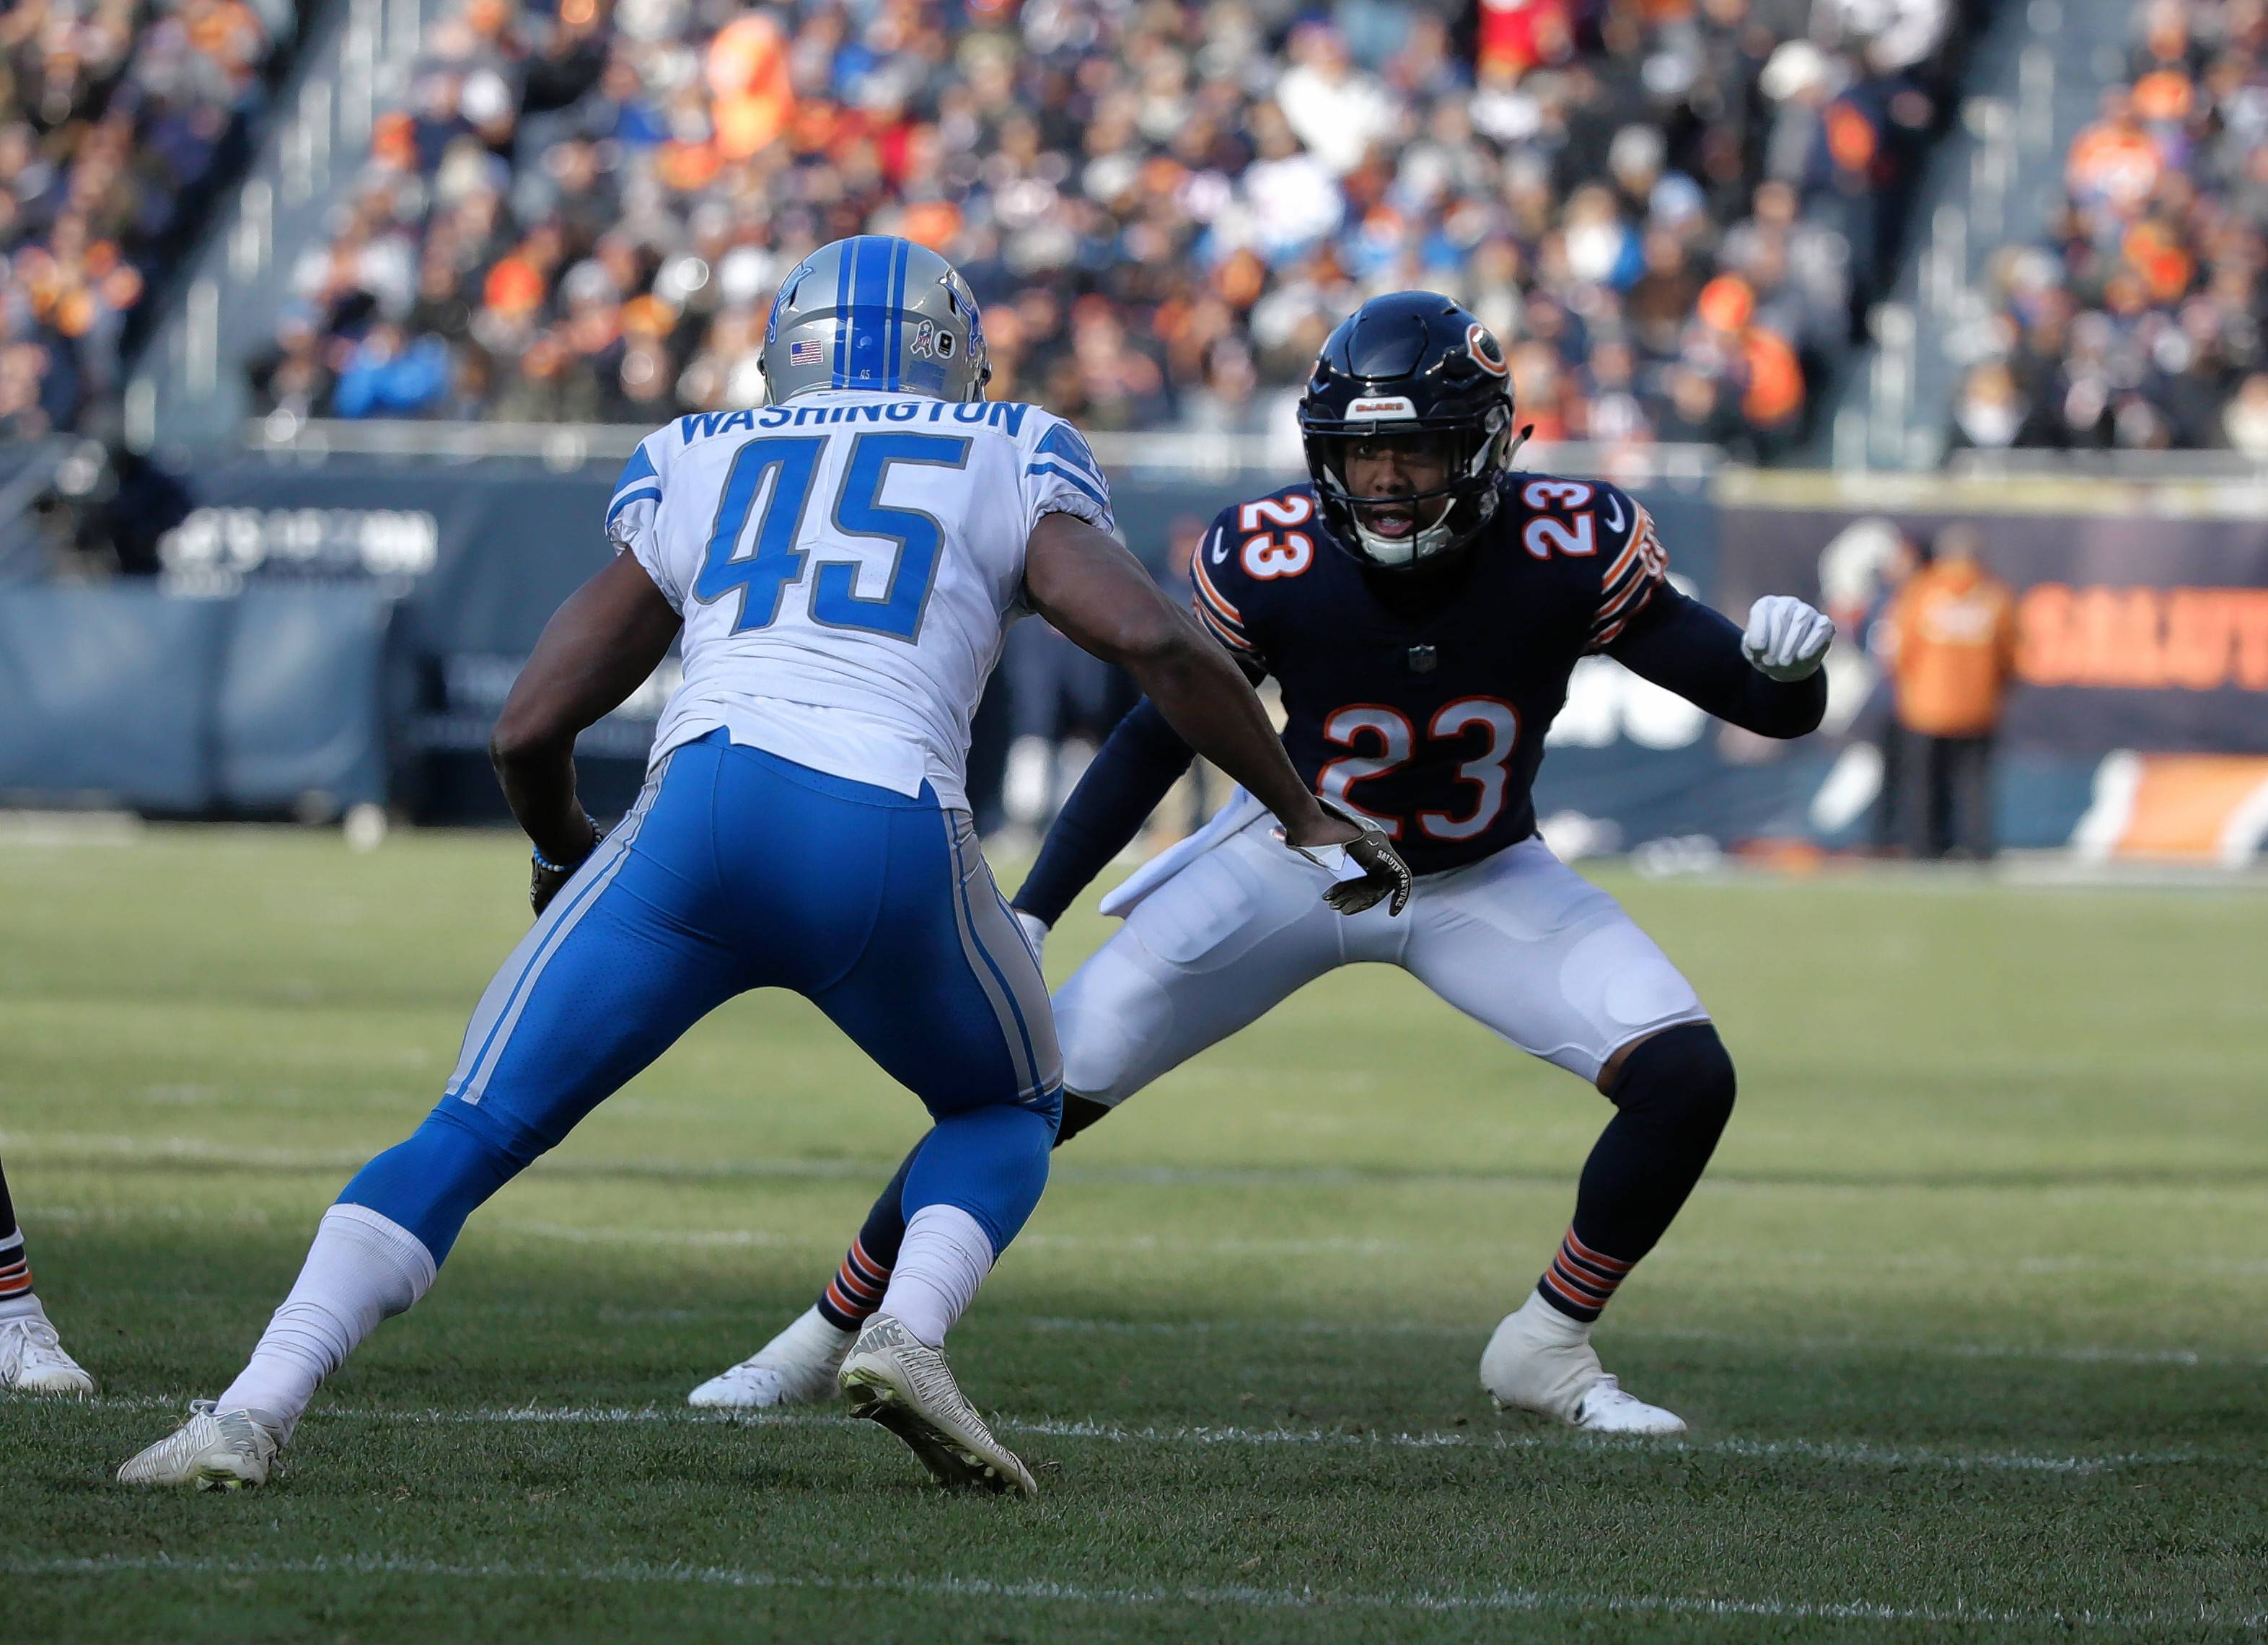 Chicago Bears cornerback Kyle Fuller (23) defends Detroit Lions defensive back Charles Washington (45) during the second half of an NFL football game Sunday, Nov. 11, 2018, in Chicago. (AP Photo/David Banks)